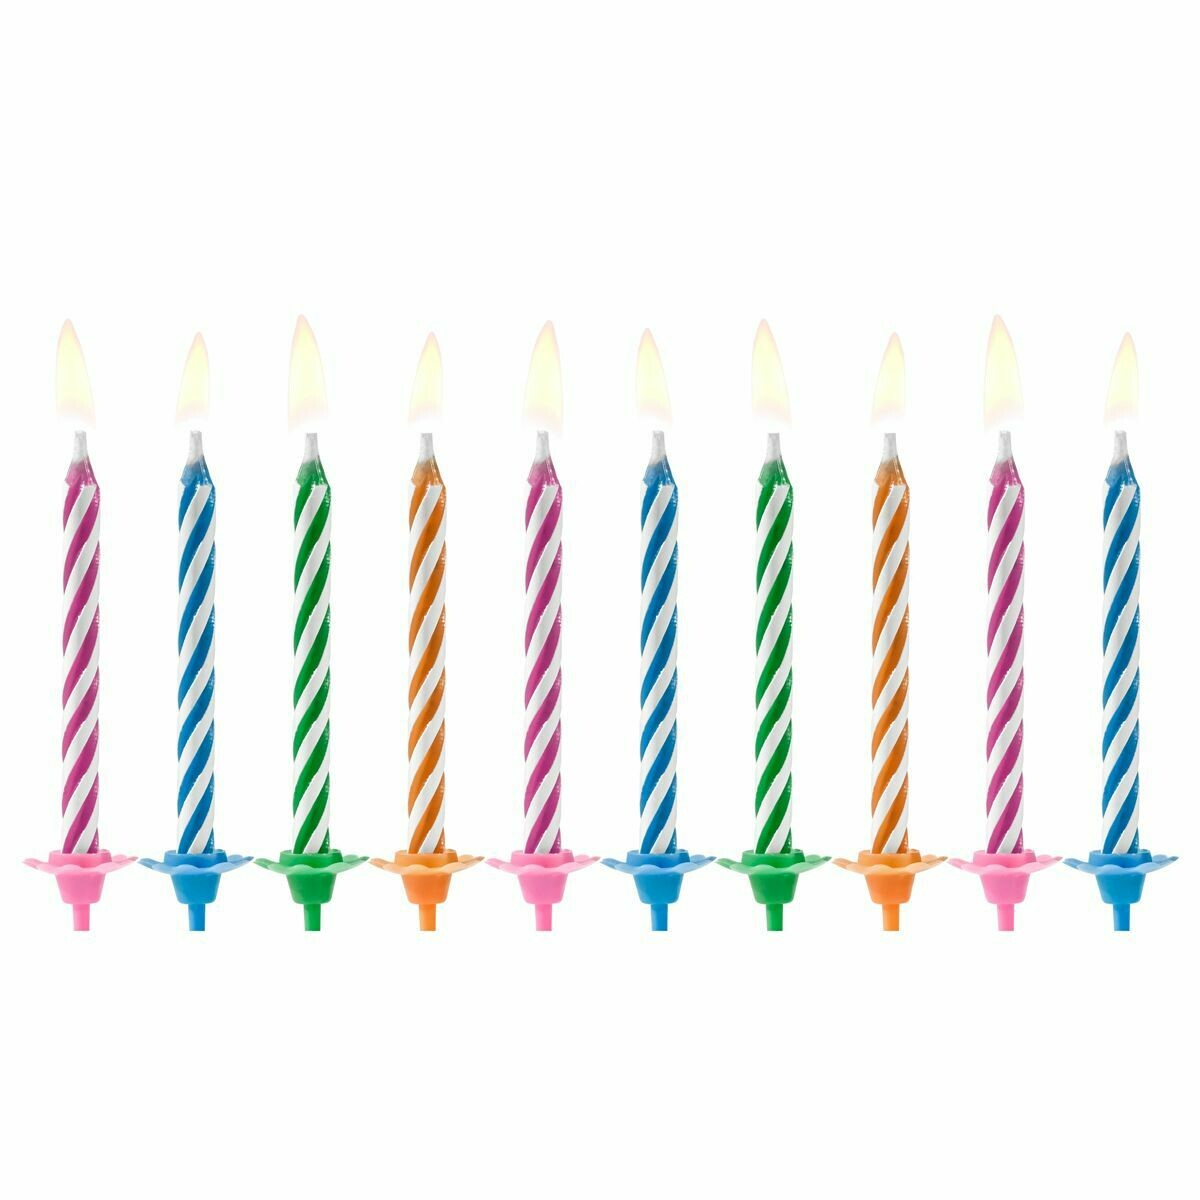 PartyDeco Birthday Candles -MAGIC RELIGHTING MIX 10 τεμ. - Μαγικά Κεράκια Πολύχρωμα